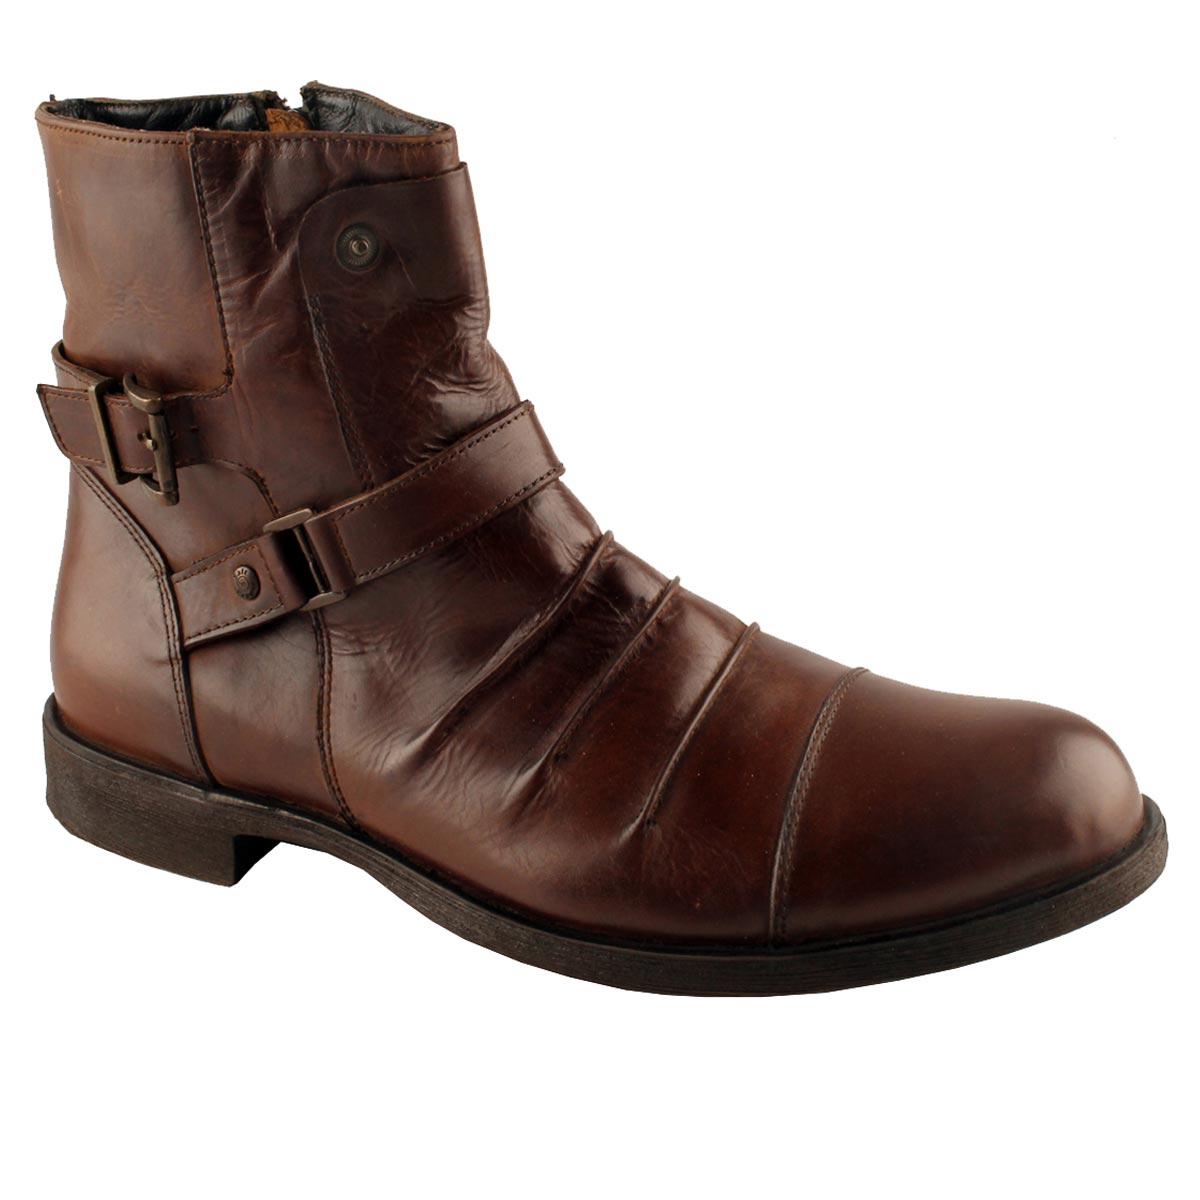 Men Shoes 10-488 OLDMONK BROWN MID ANKLE BOOTS